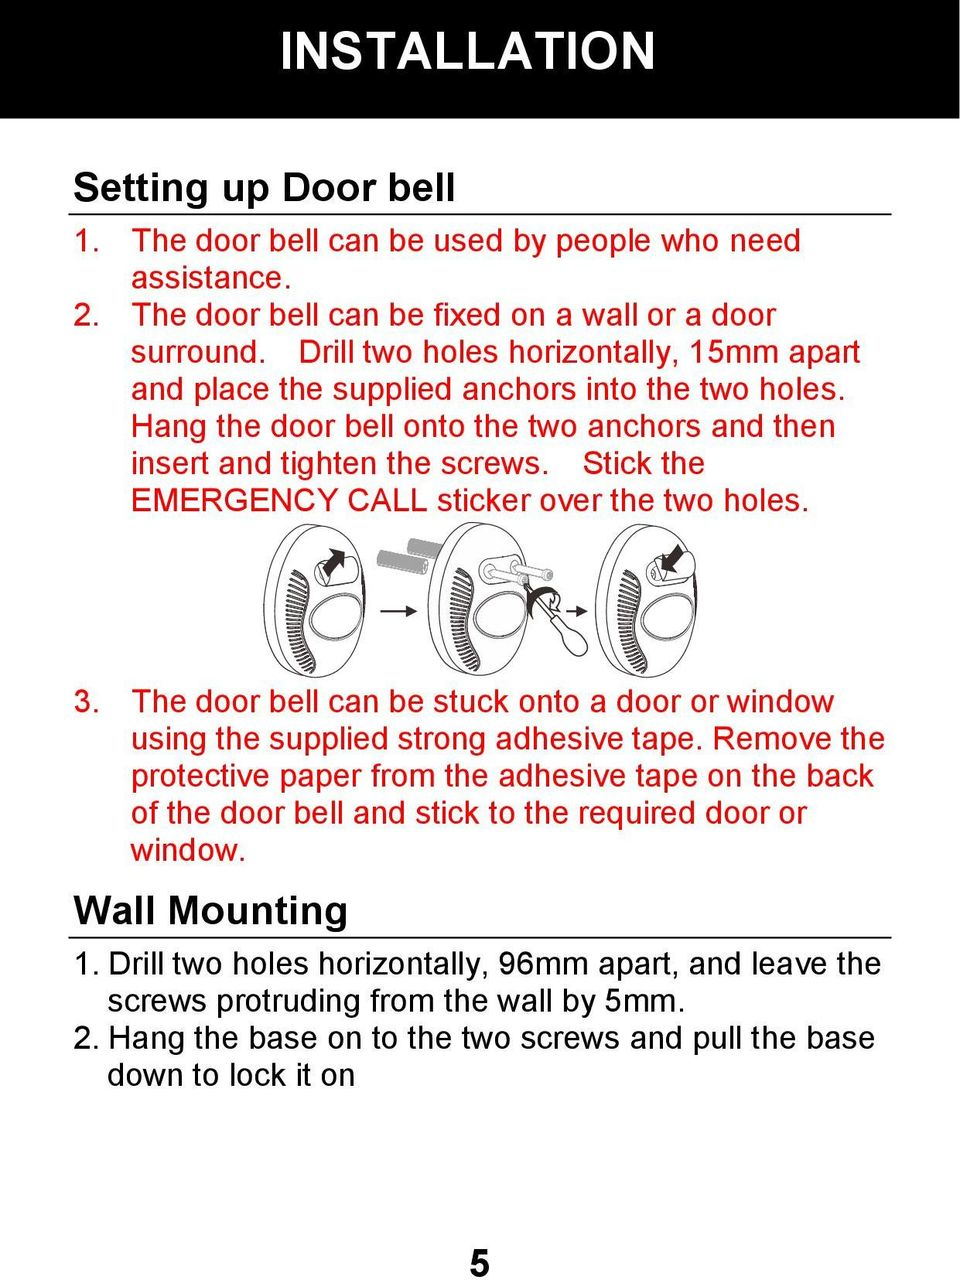 Stick the EMERGENCY CALL sticker over the two holes. 3. The door bell can be stuck onto a door or window using the supplied strong adhesive tape.